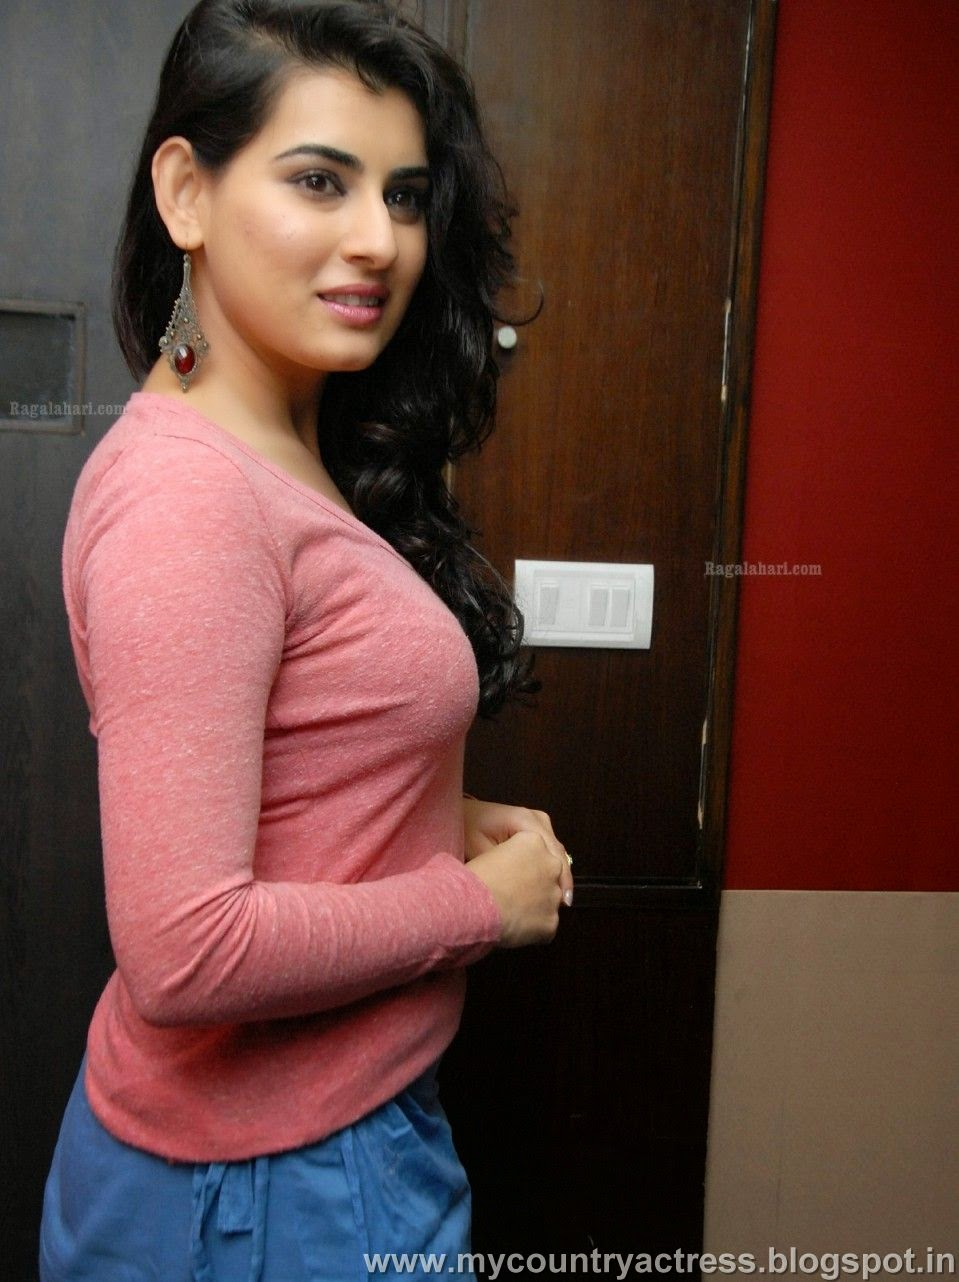 veda archana in full sleeve pink t shirt